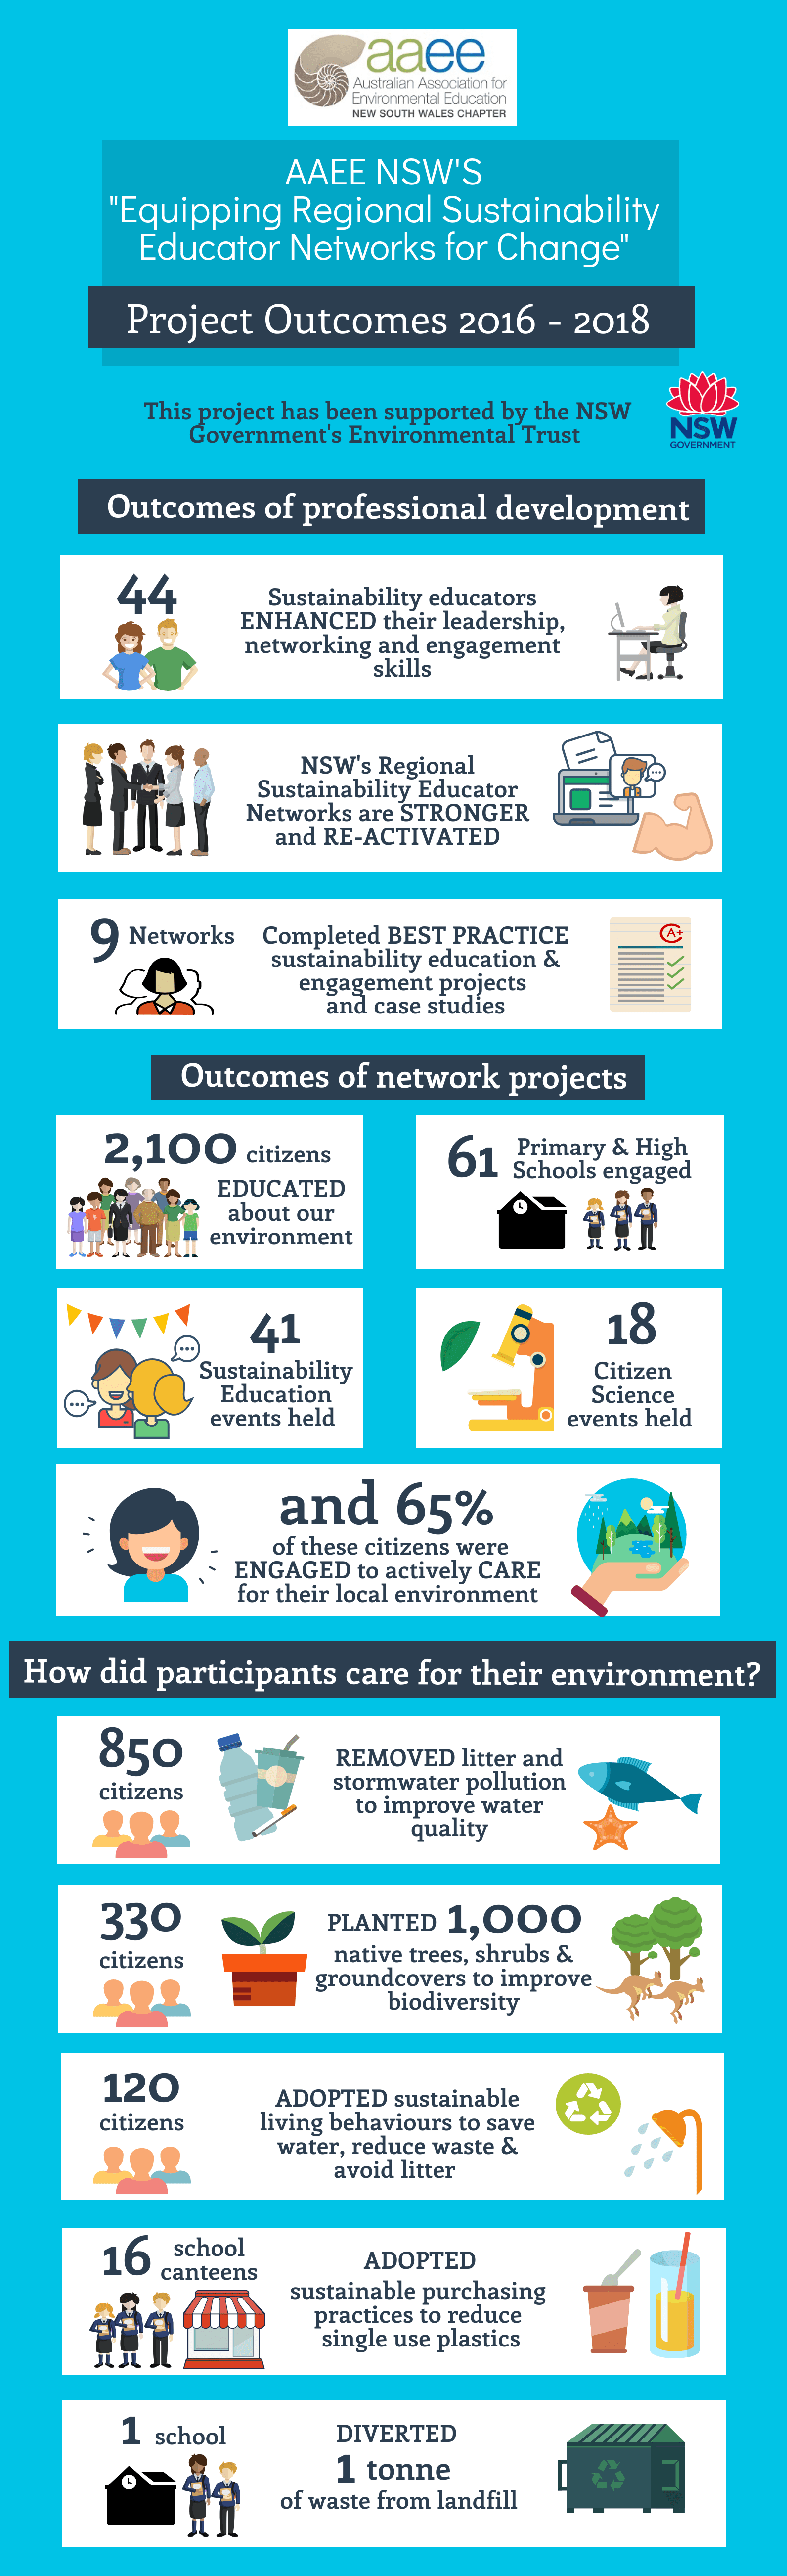 AAEE NSW's 'Equipping Regional Sustainability Educator Networks for Change' infographic